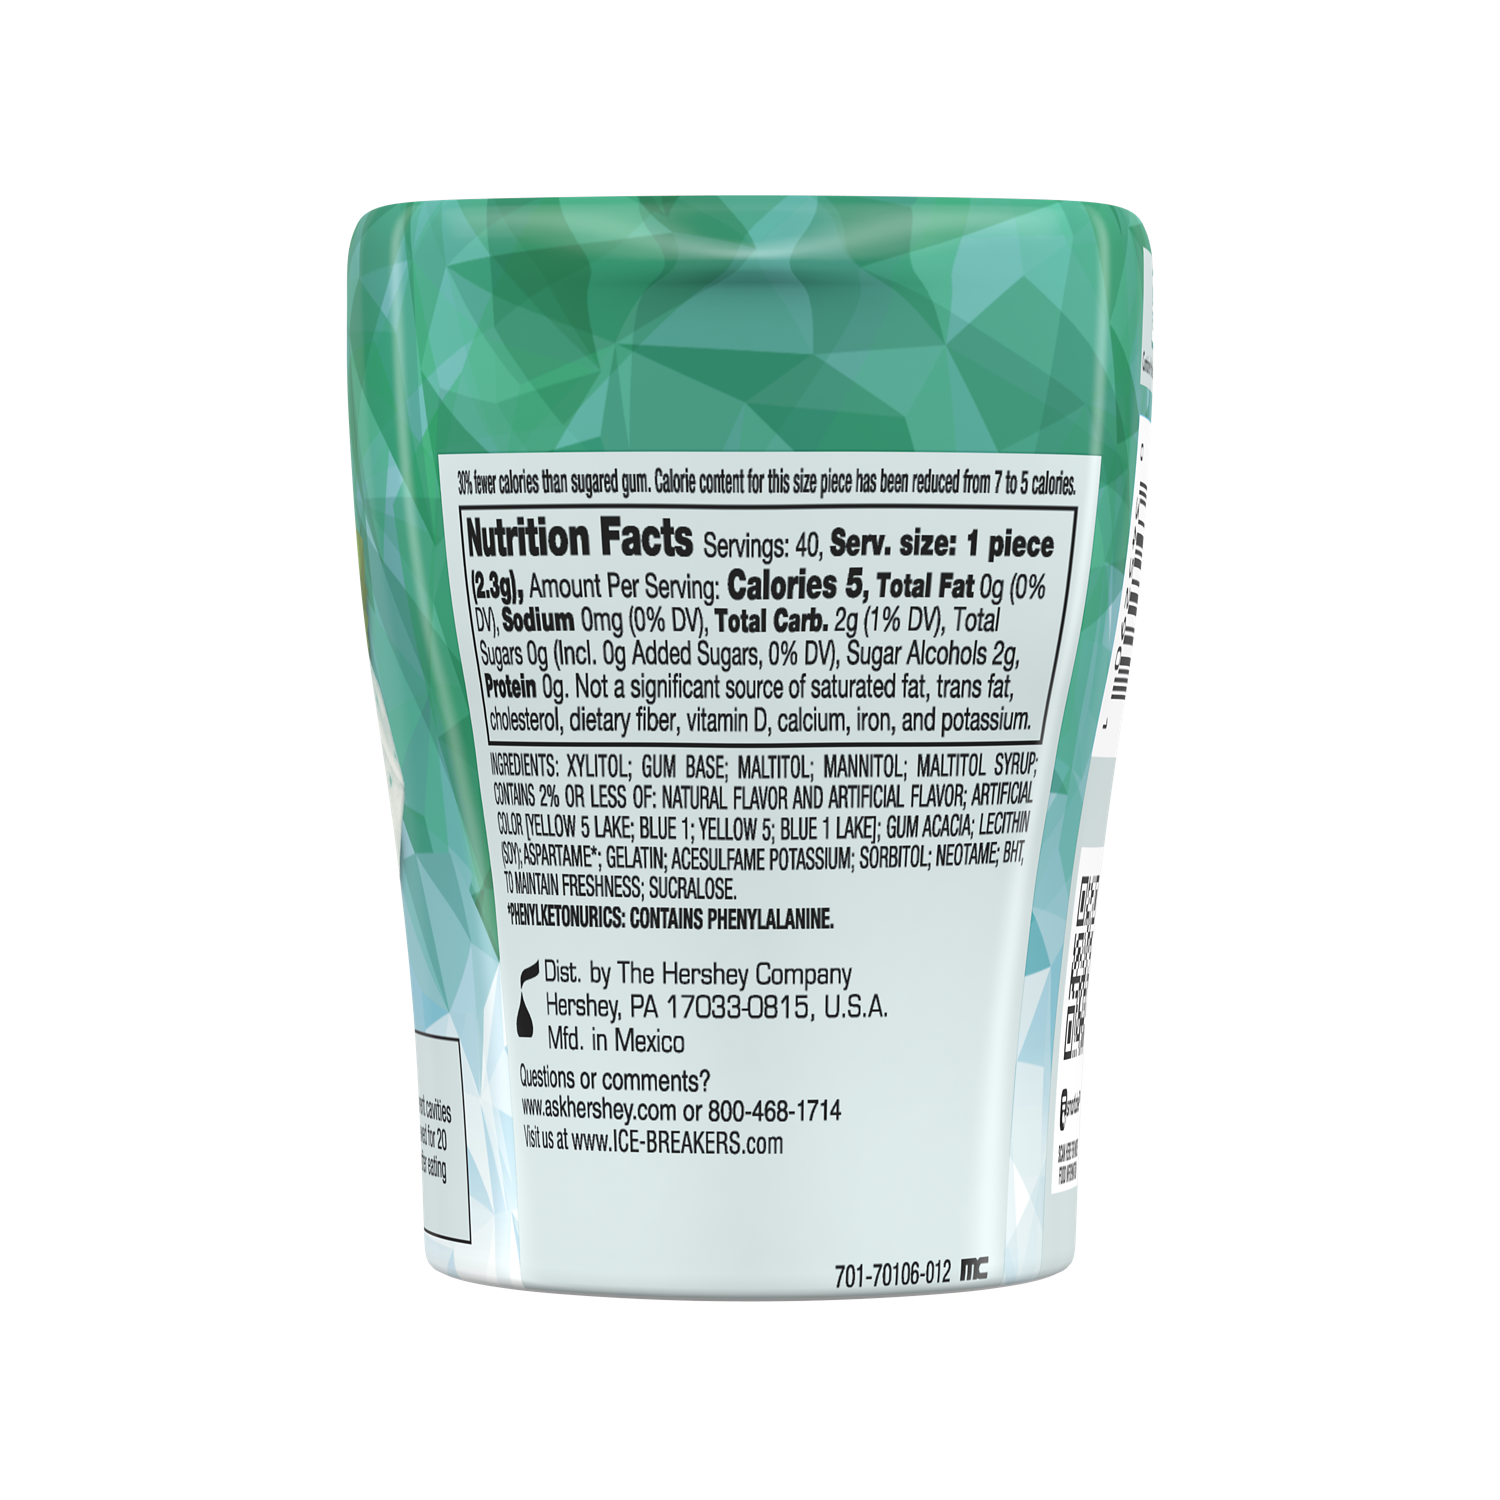 ICE BREAKERS ICE CUBES Wintergreen Sugar Free Gum, 3.24 oz bottle, 40 pieces - Back of Package